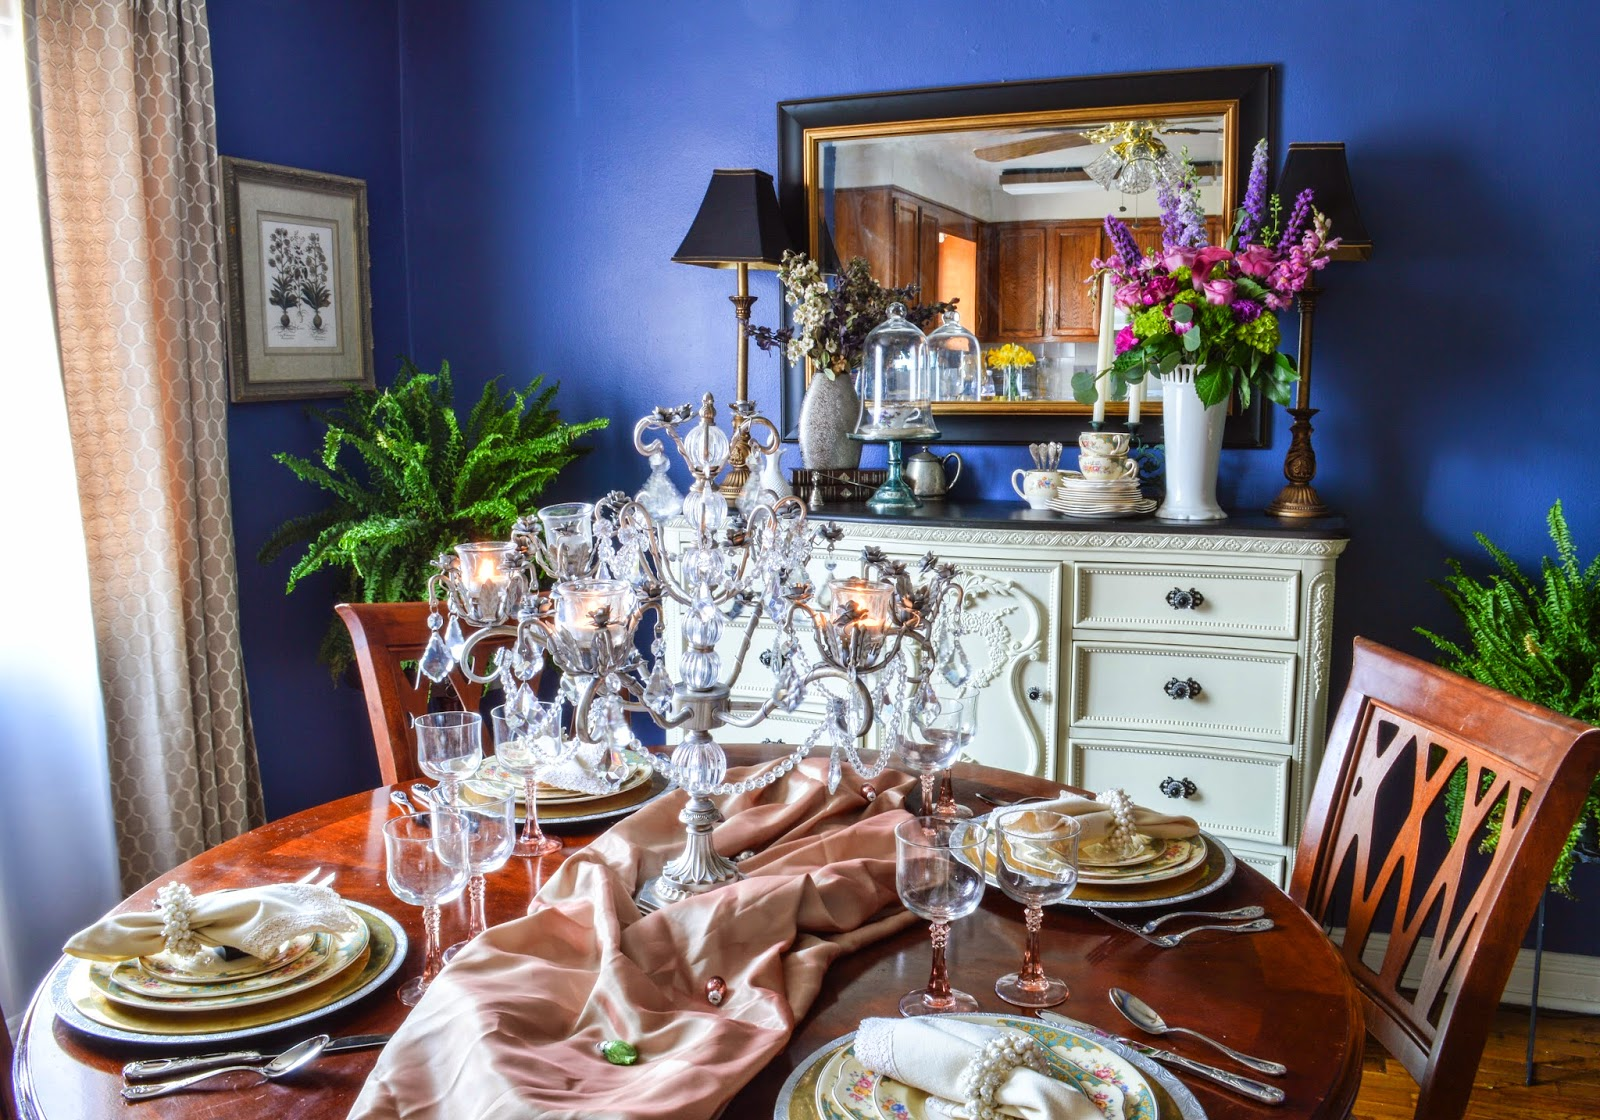 Easter Dining Room, Vintage and Elegant